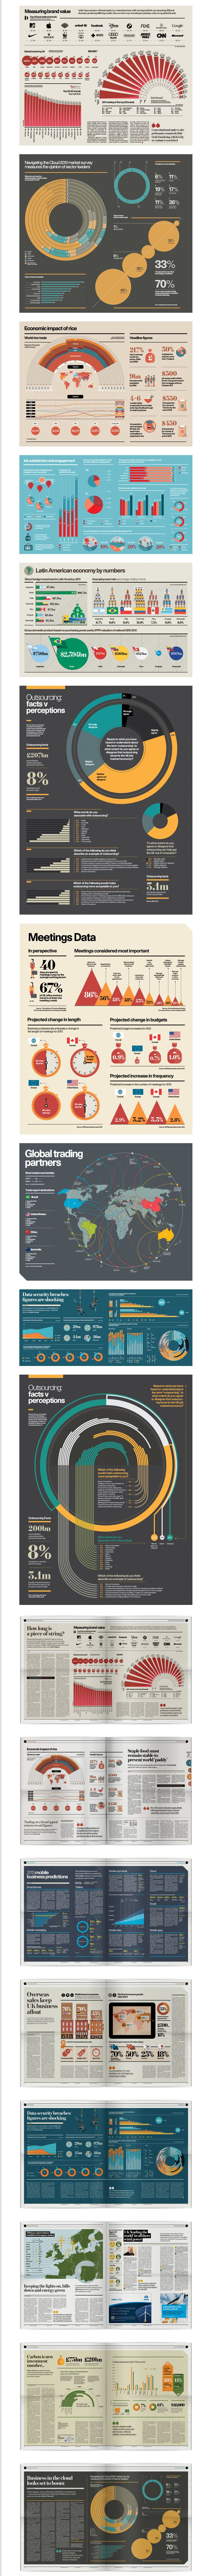 Infographics / dashboards: Q3-Q4 2012  Raconteur / The Times / The Sunday Times Newspaper Data Visualisation